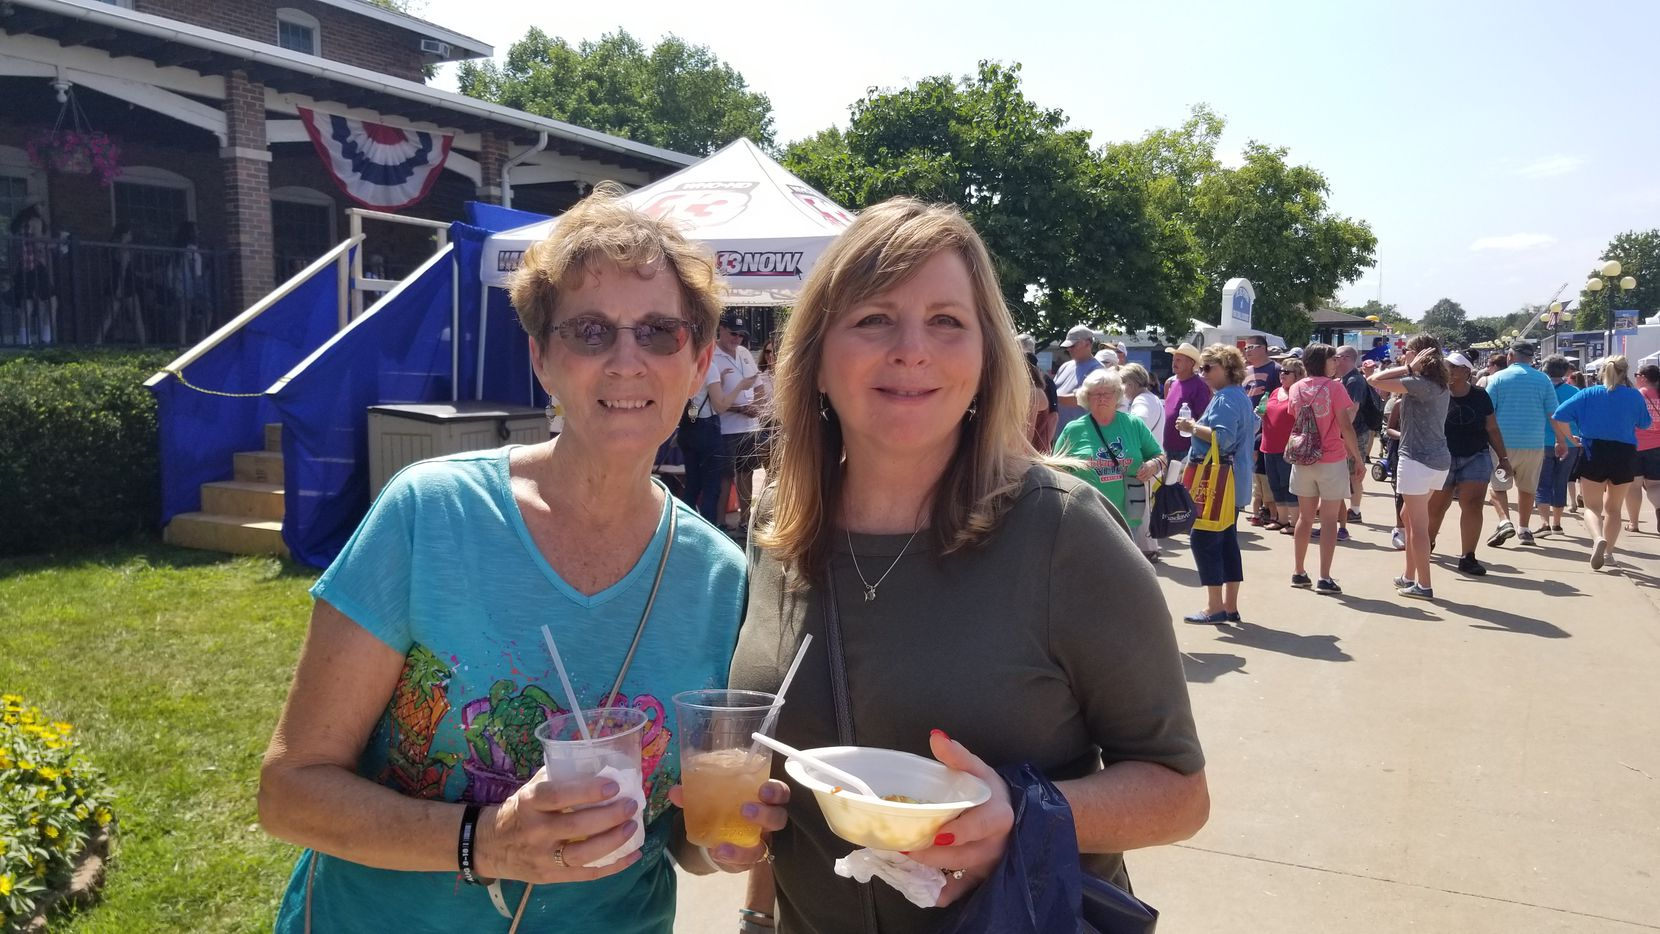 Beverly Hutchinson, 75, a retired deputy sheriff from Oskaloosa, and her daughter Shari Giudicessi, 57, a Des Moines retail manager, at the Iowa State Fair on Aug. 8, 2019. They agreed that Beto O'Rourke's place was in El Paso rather than Iowa in the week after a mass shooting in his hometown.